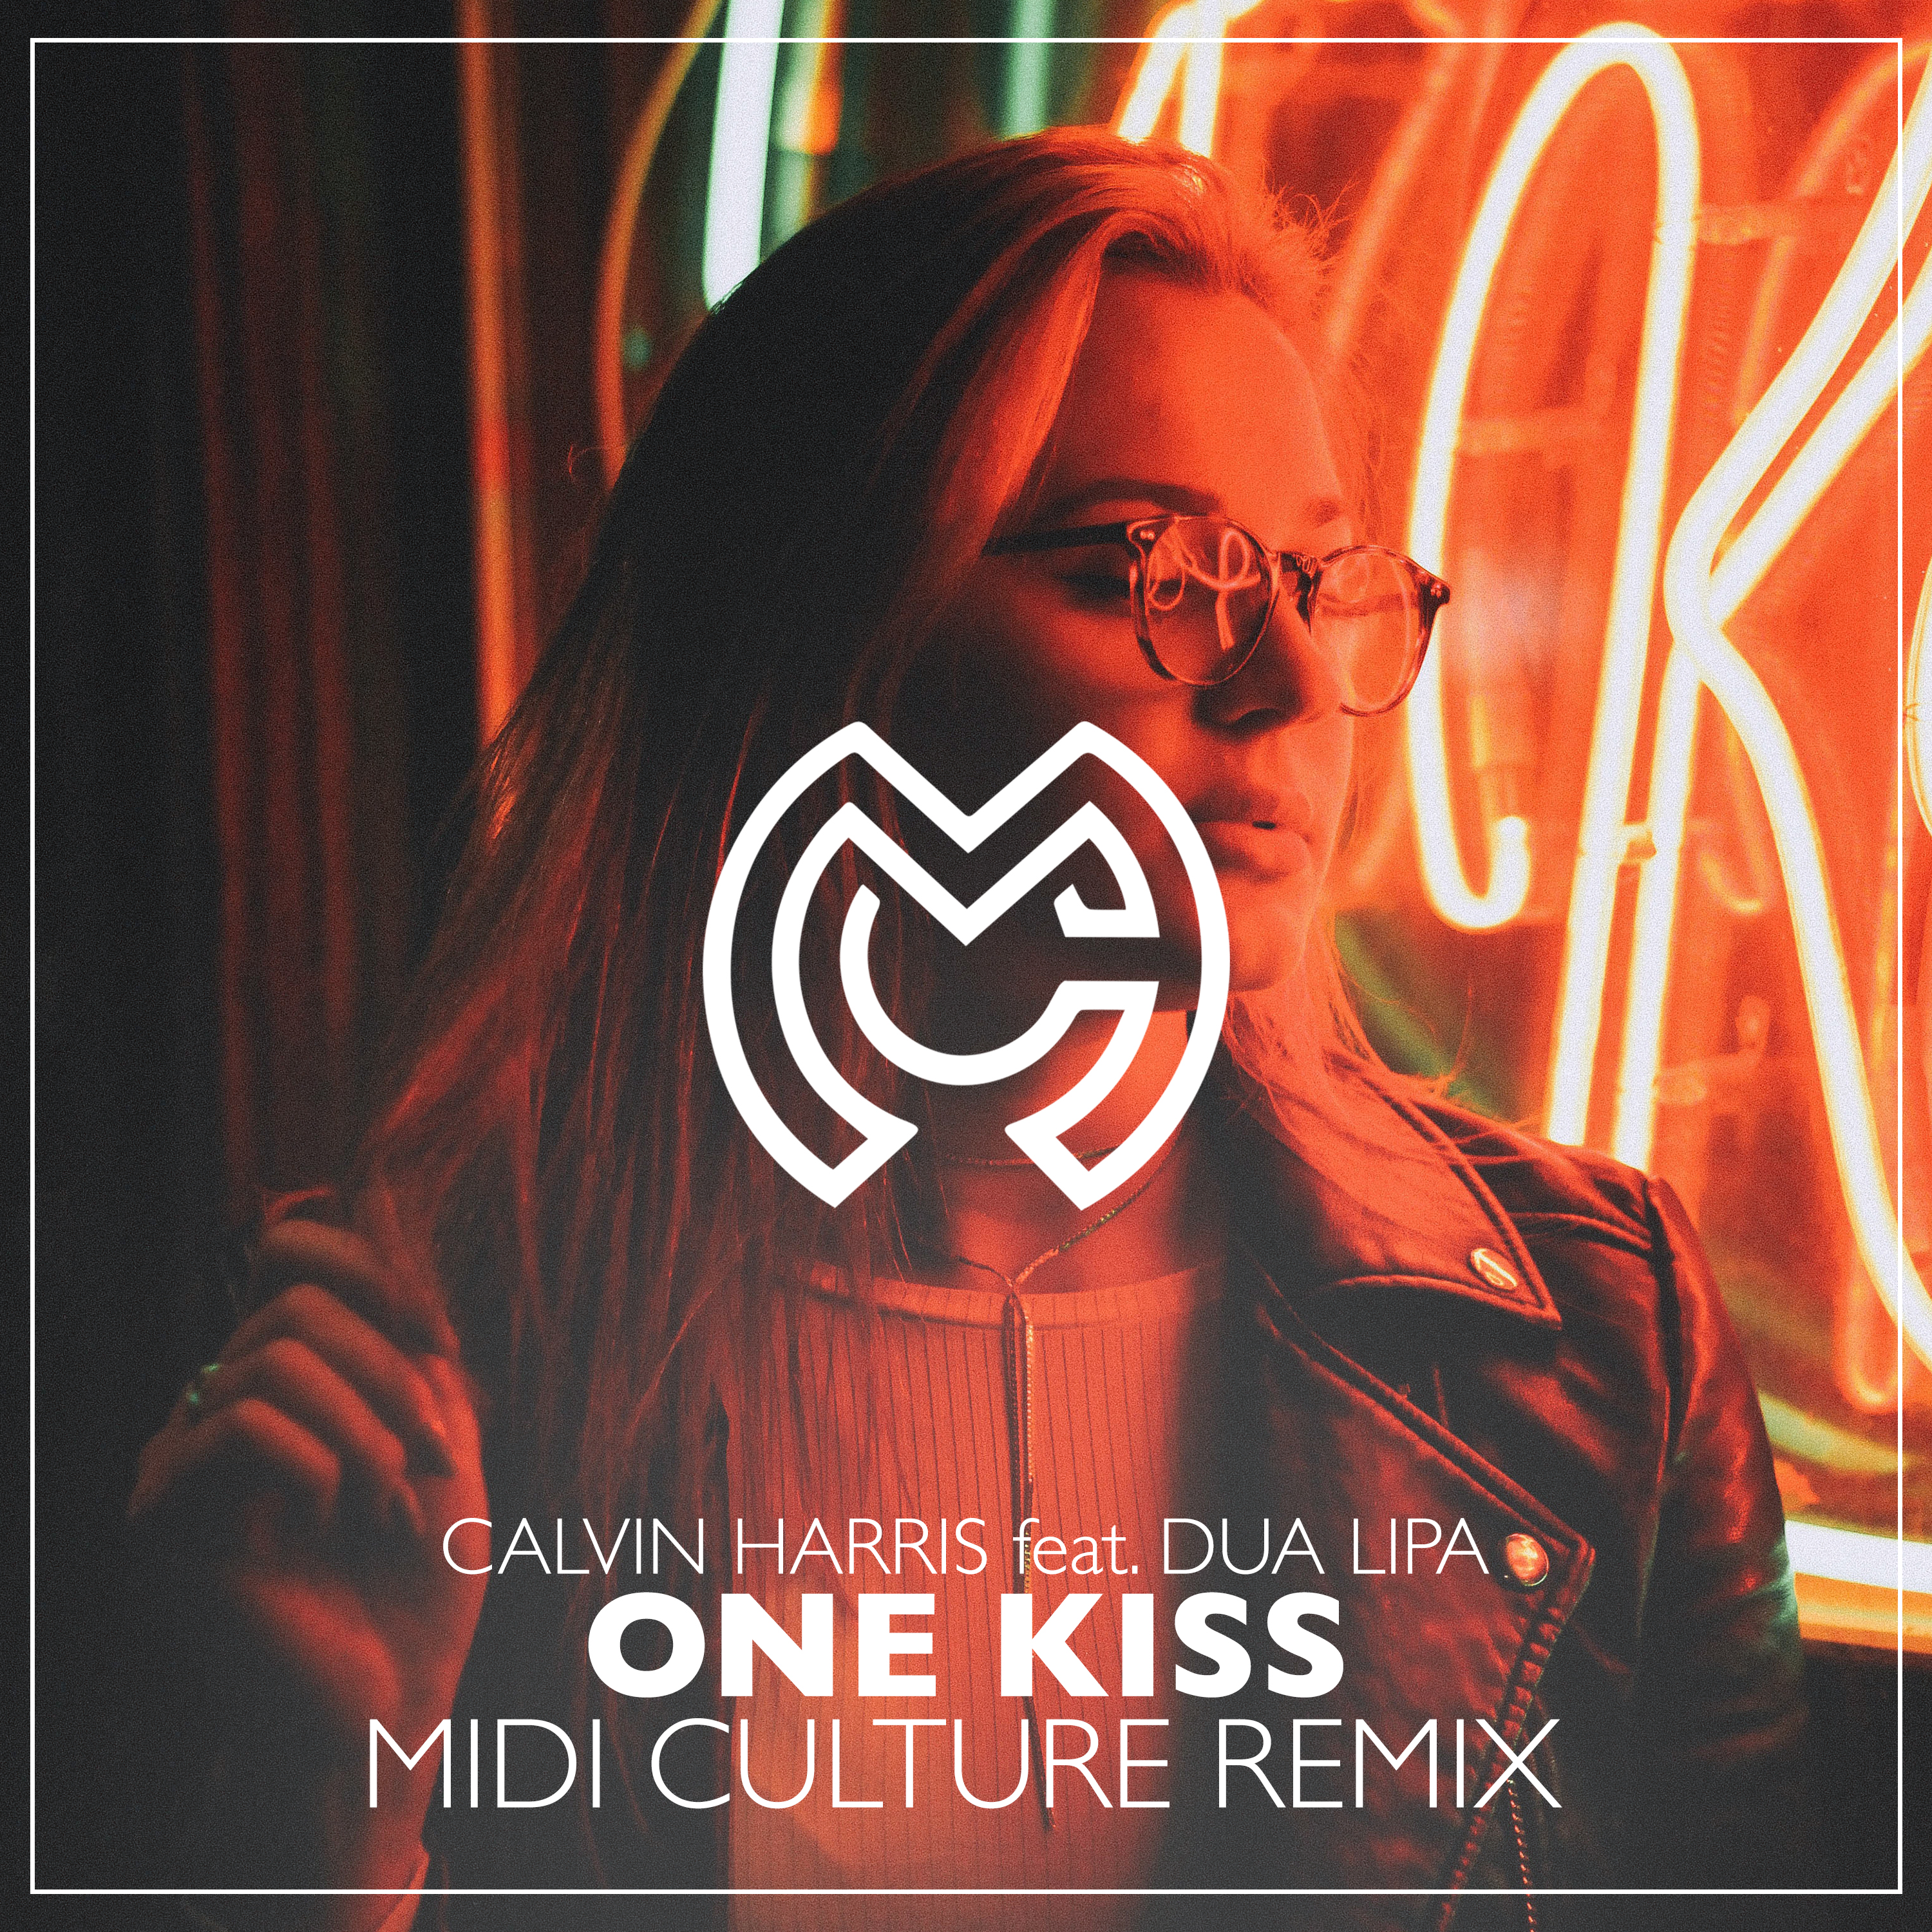 Calvin Harris feat. Dua Lipa  - One Kiss  (Midi Culture Extended Remix)